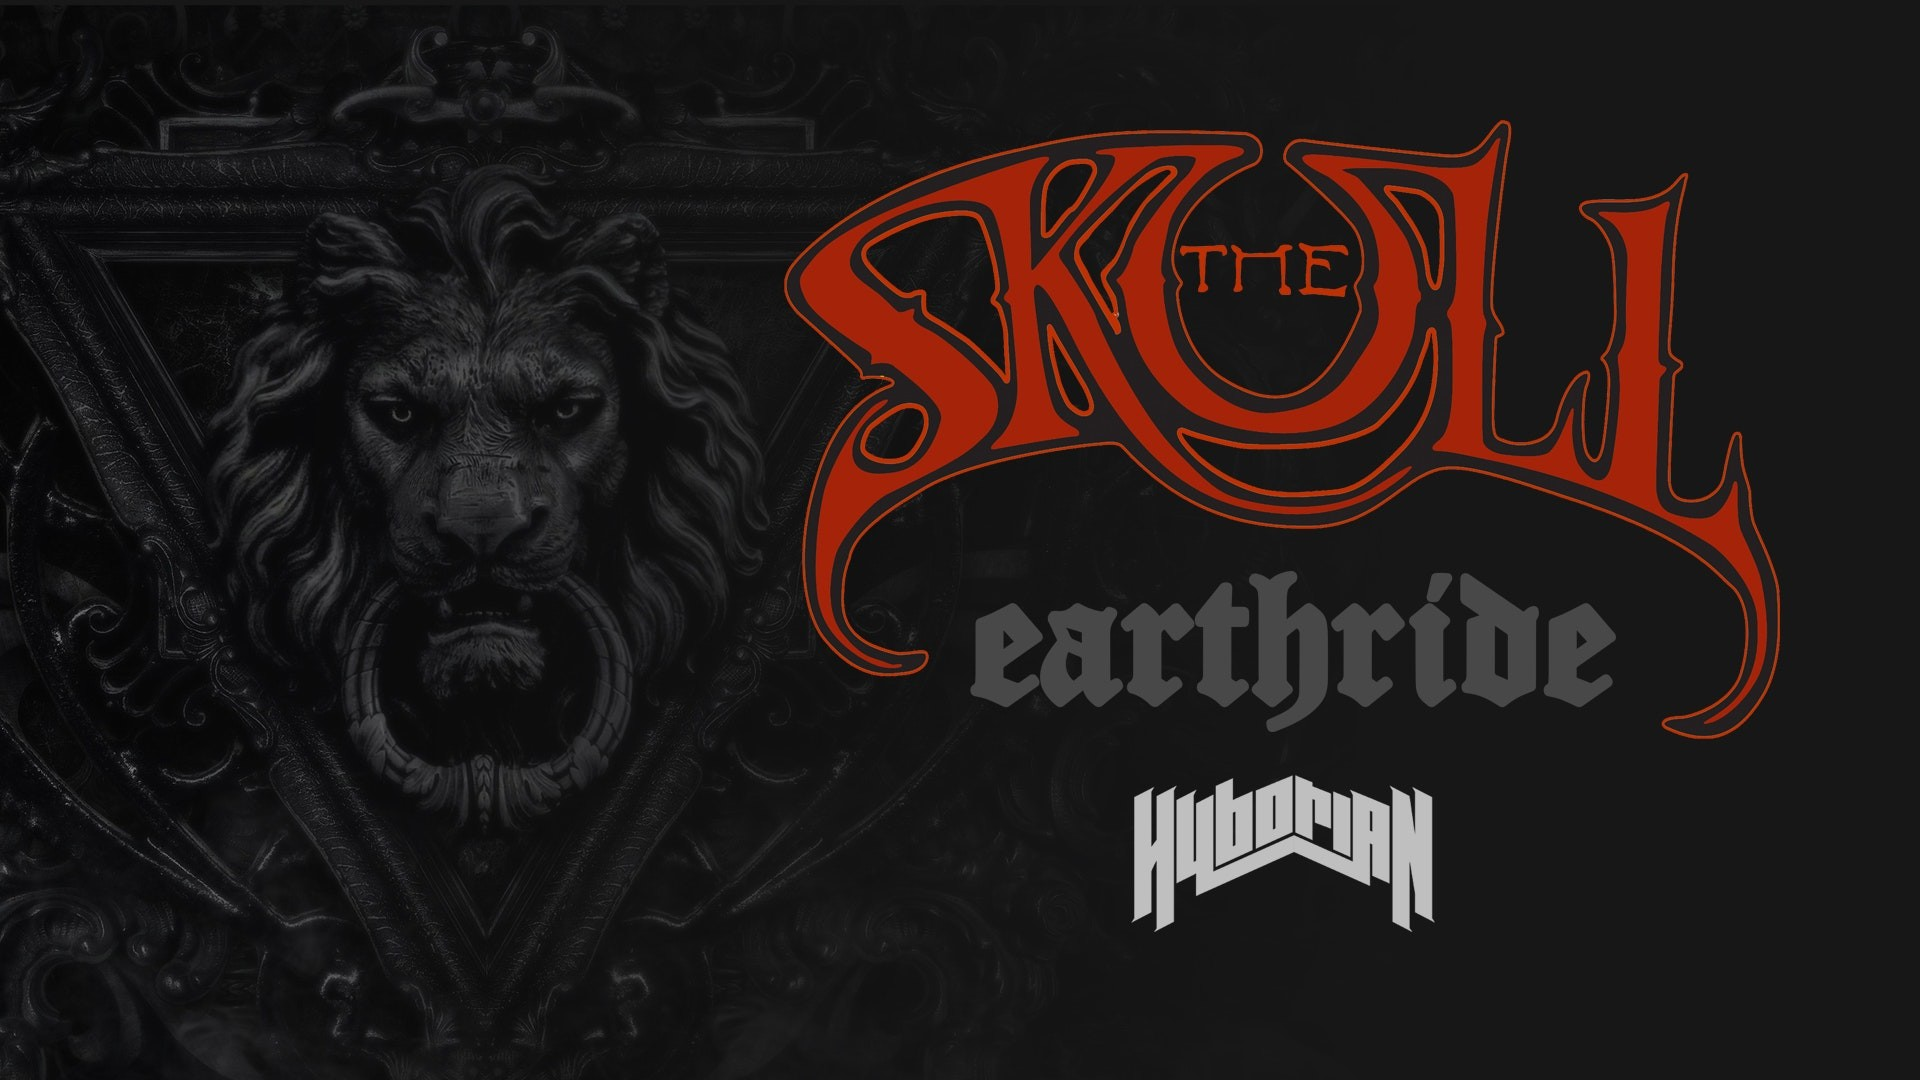 Res: 1920x1080, The Skull, Earthride, Hyborian, & Ether Feather – Tickets – Resident – Los  Angeles, CA – June 13th, 2018 | Resident